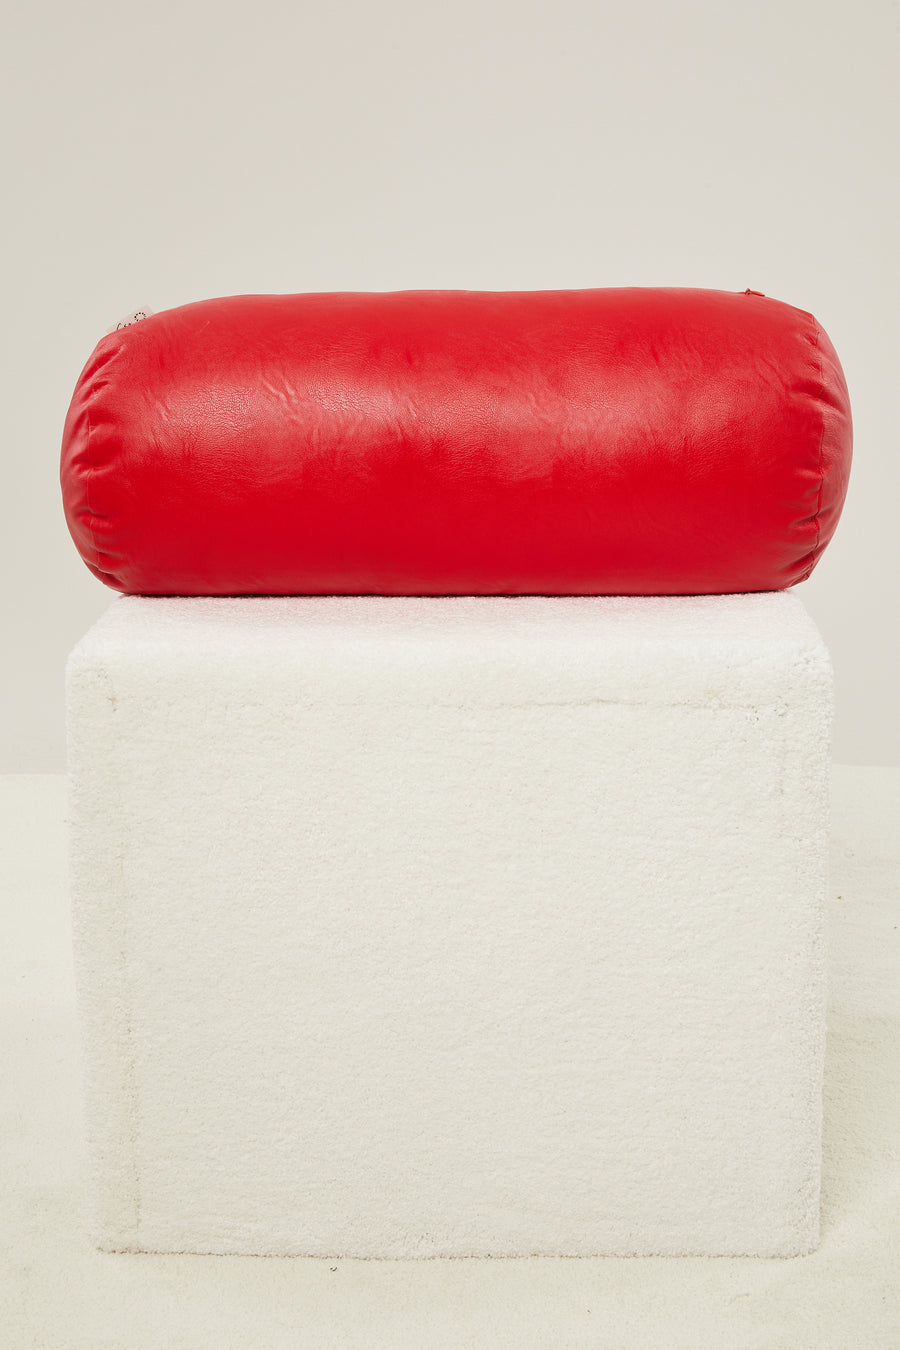 CaSa Vegan Leather Roll Pillow in Tomato